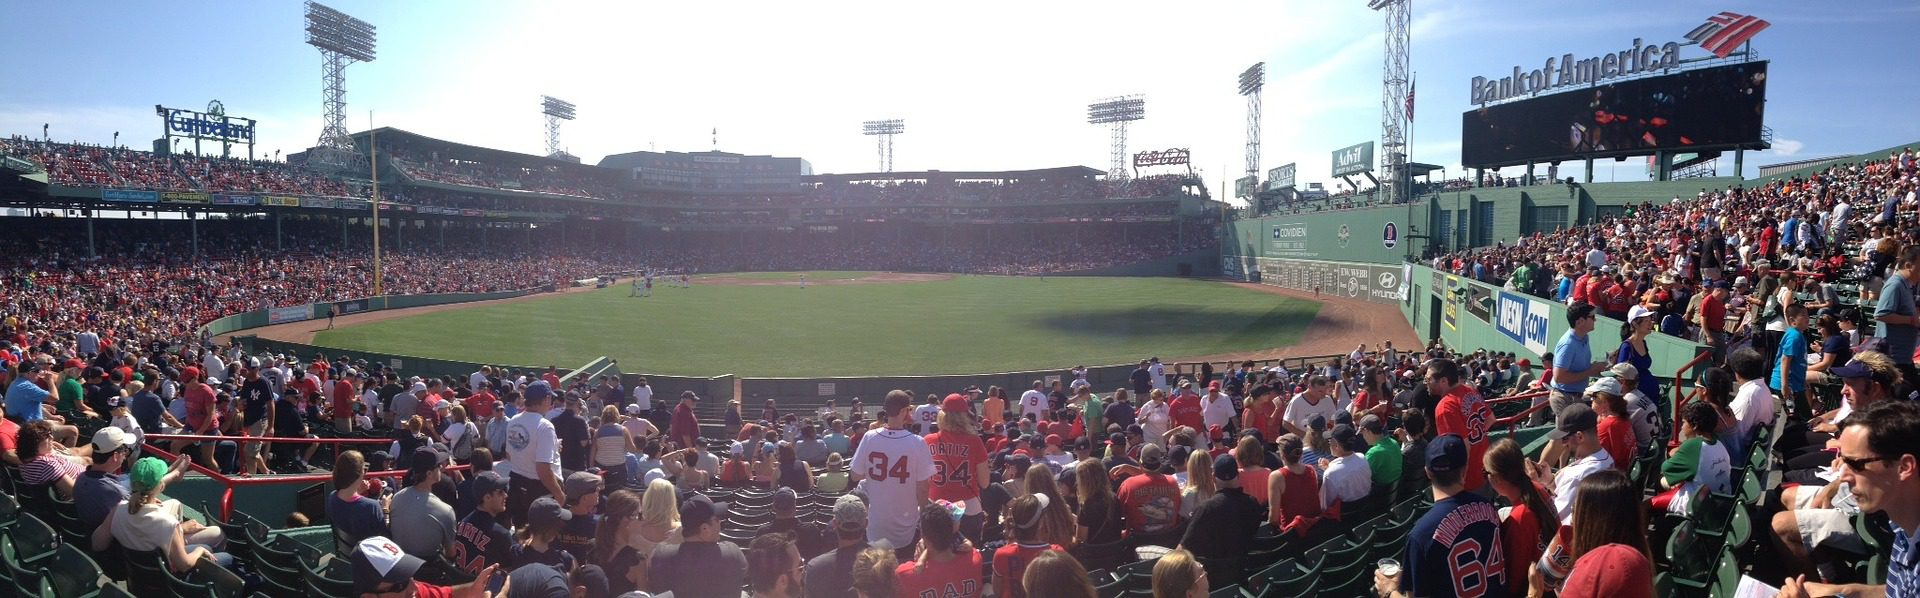 Fenway Park Bag Policy and Luggage Storage